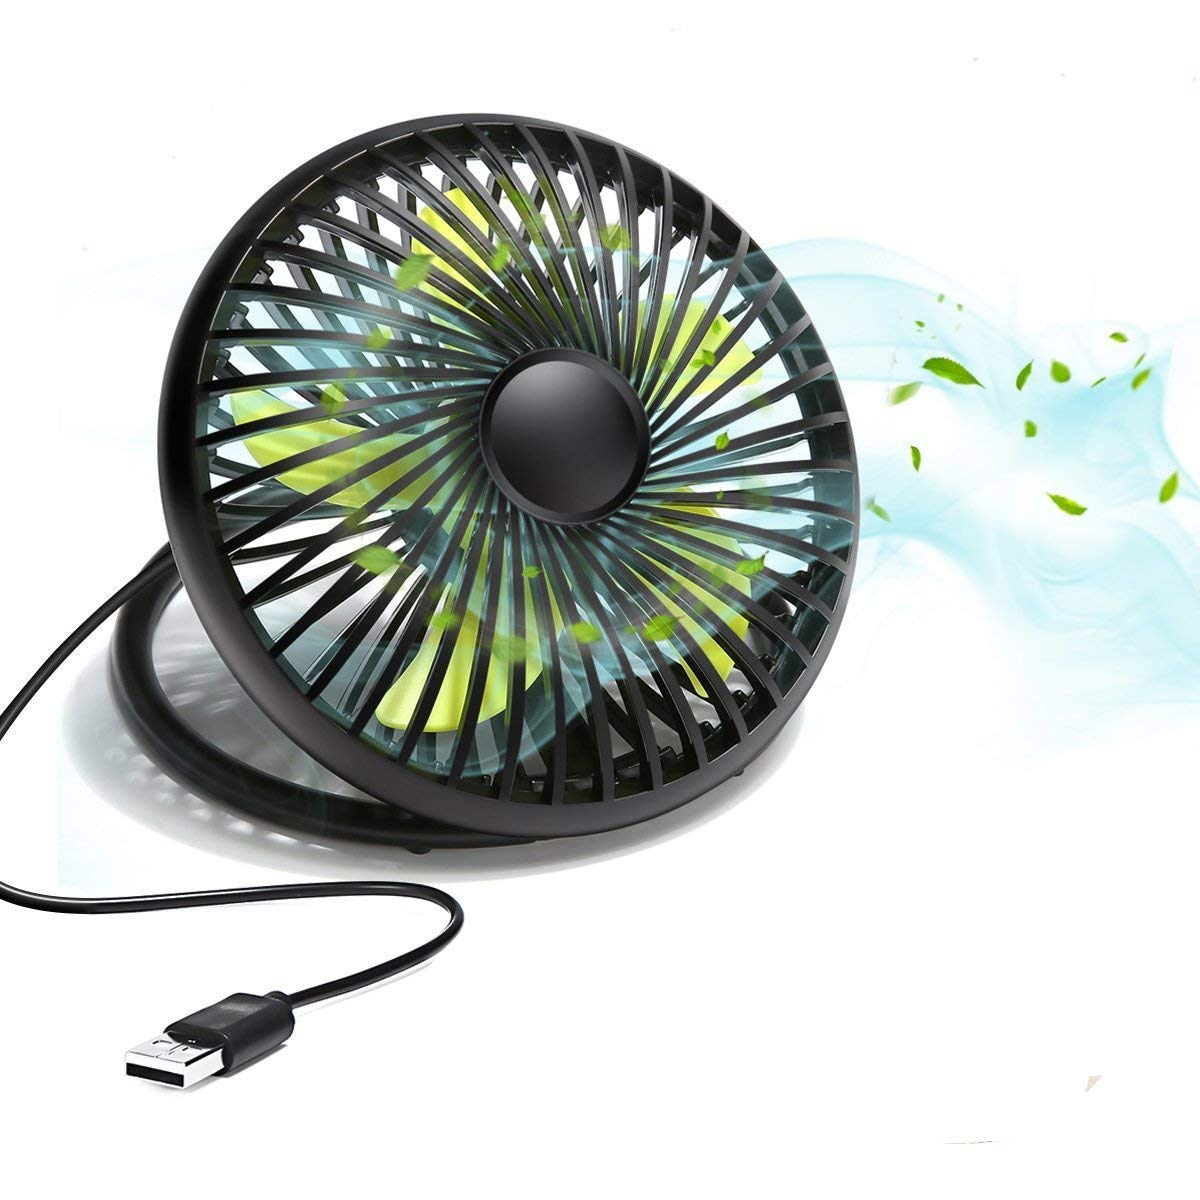 Mini Handheld Fan, MECO Portable Operated Fan Desktop Fan Outdoor Electric Fan with Phone Holder Aromatherapy Design 3 Speeds for Home Office Outdoors Travel-Newest 2018 heacipe2856